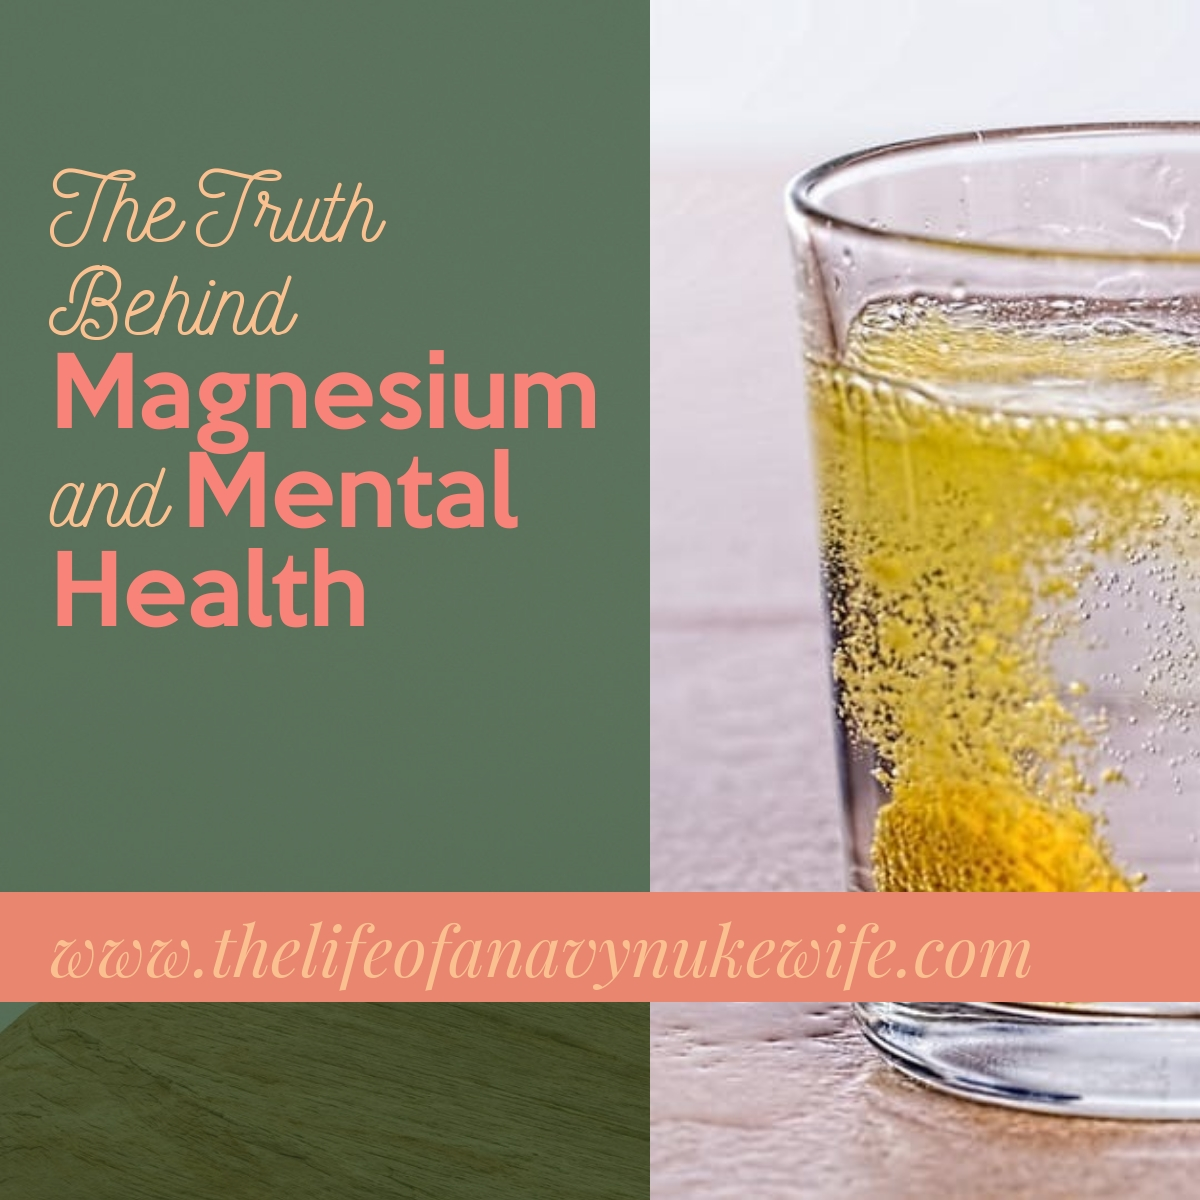 All the questions you have about magnesium and mental health answered here in this post #mentalhealth #wellness #putyourselffirst